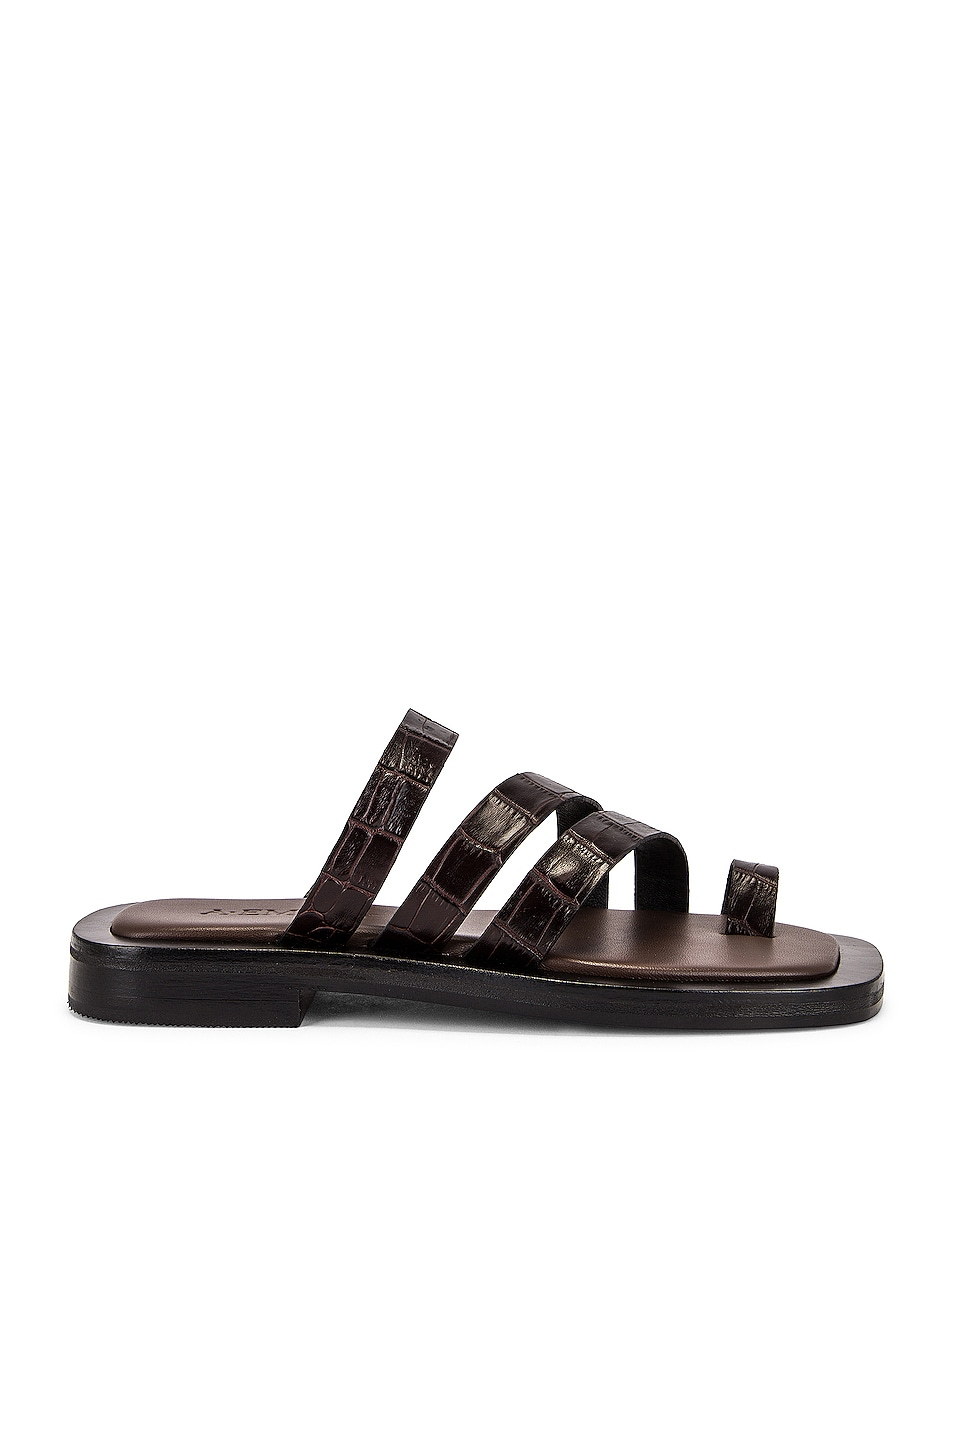 Image 1 of A.EMERY Liam Sandal in Deep Brown Croc